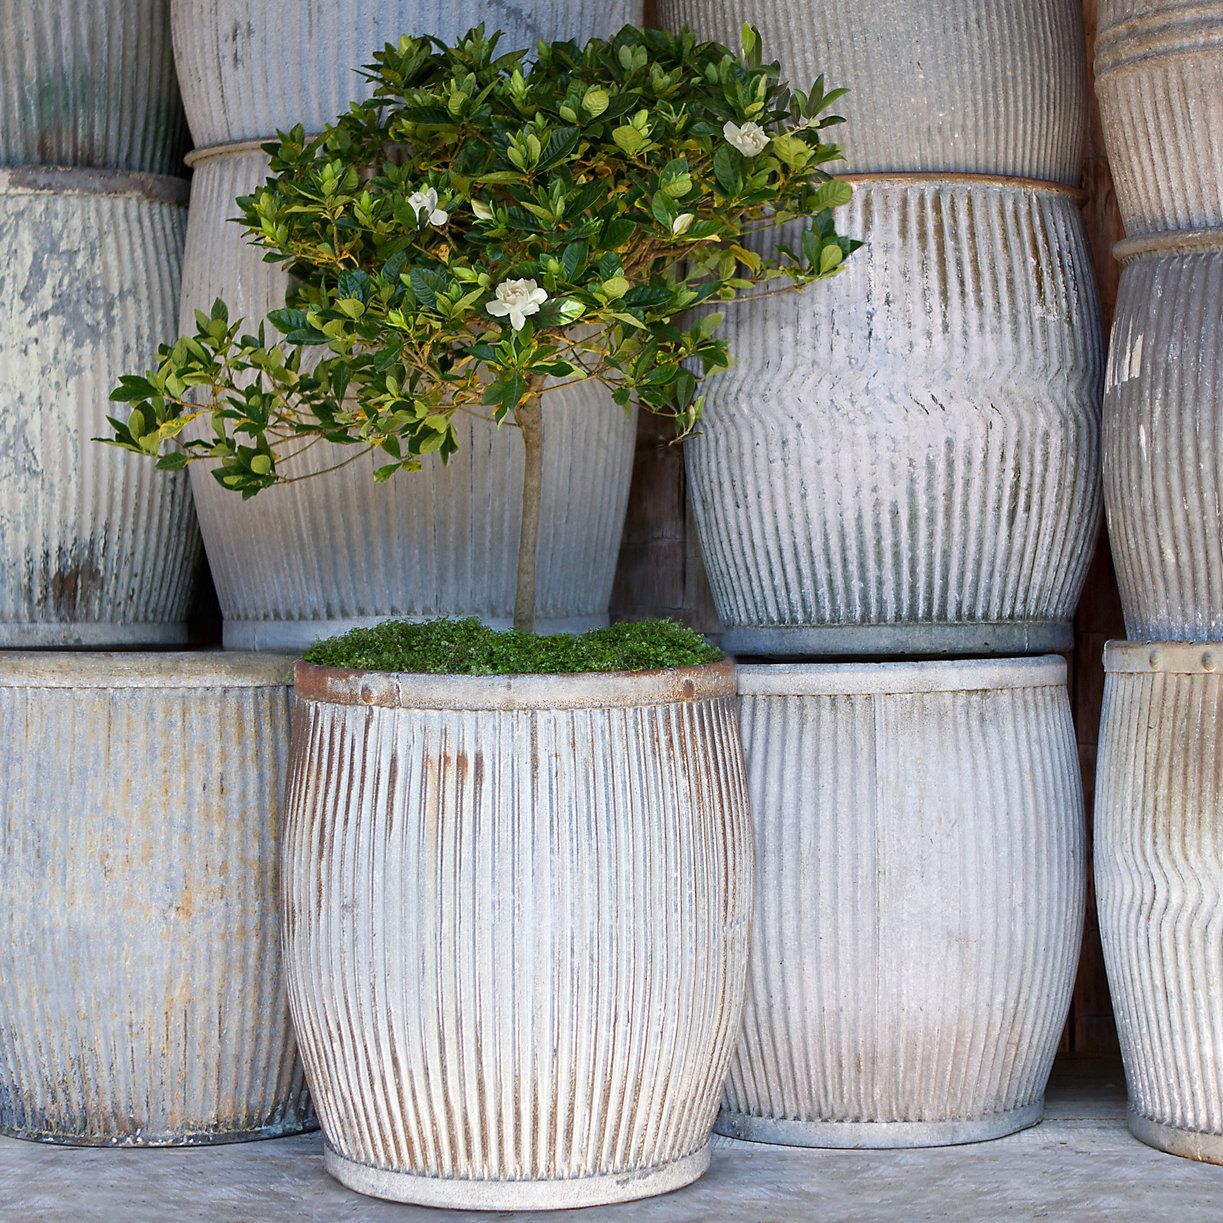 Barrels, Garden Planters And Planters